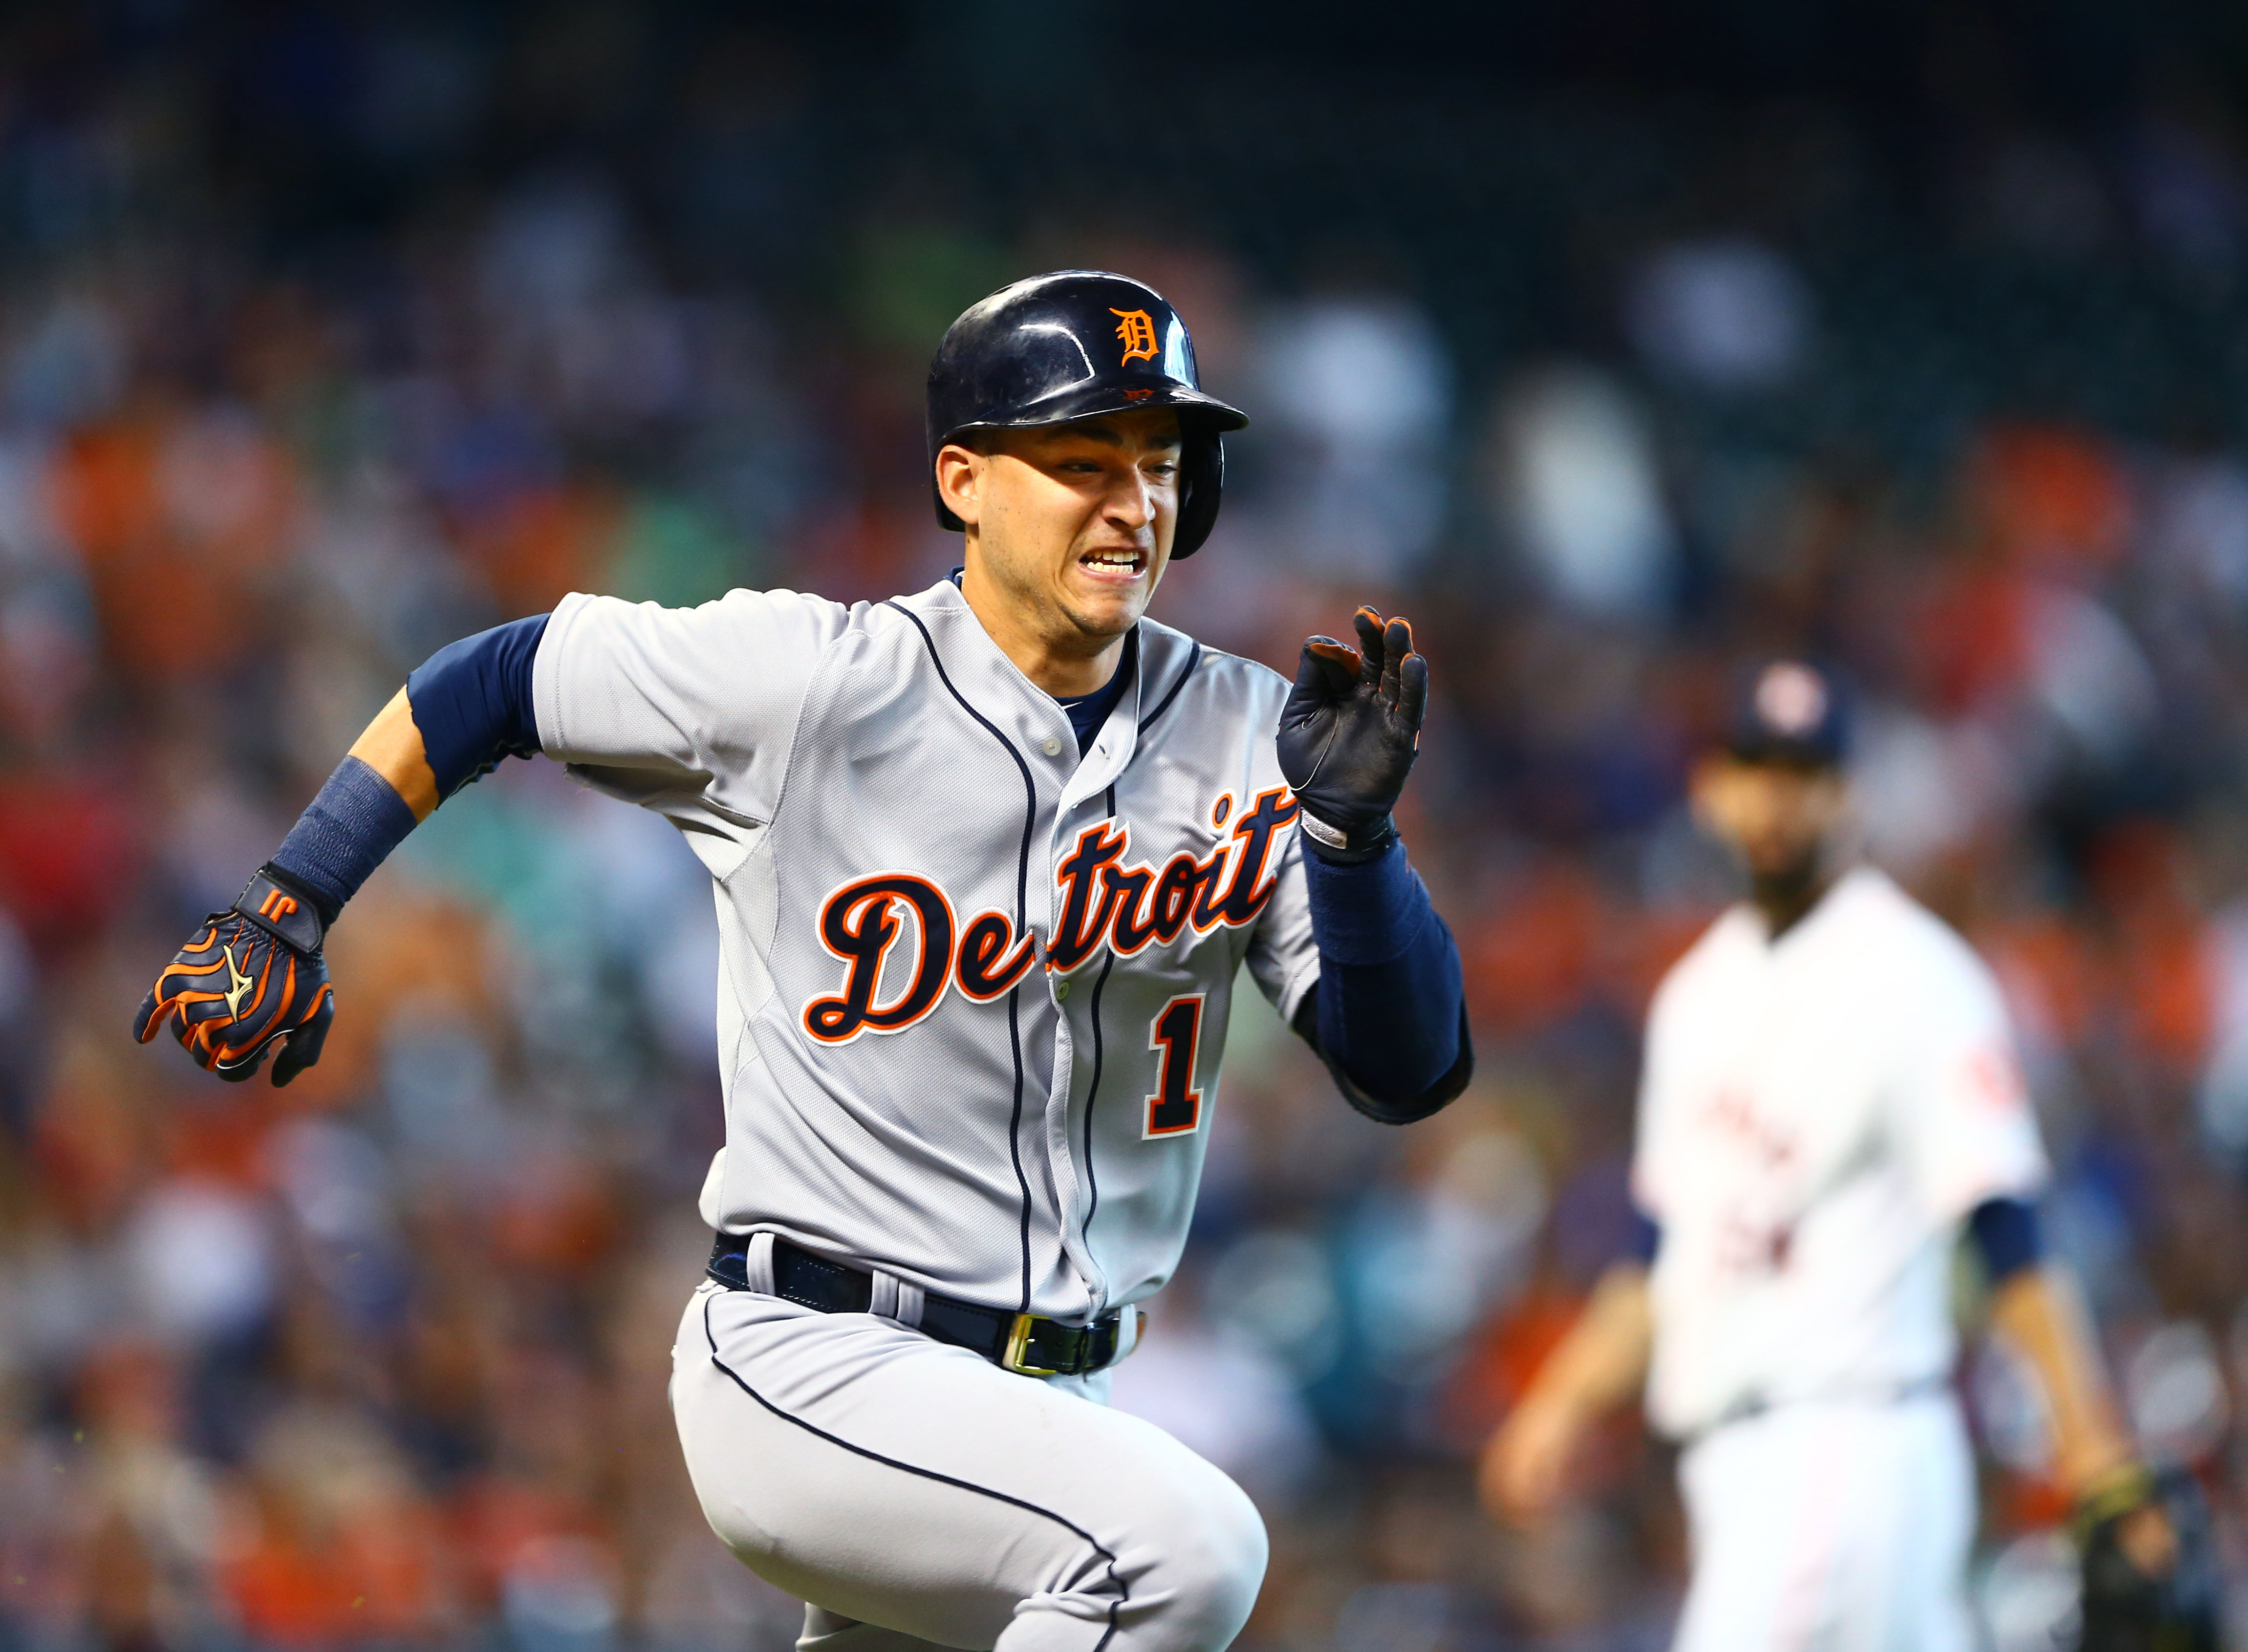 Jose Iglesias is a great defender, but can he keep his offensive production at this level?